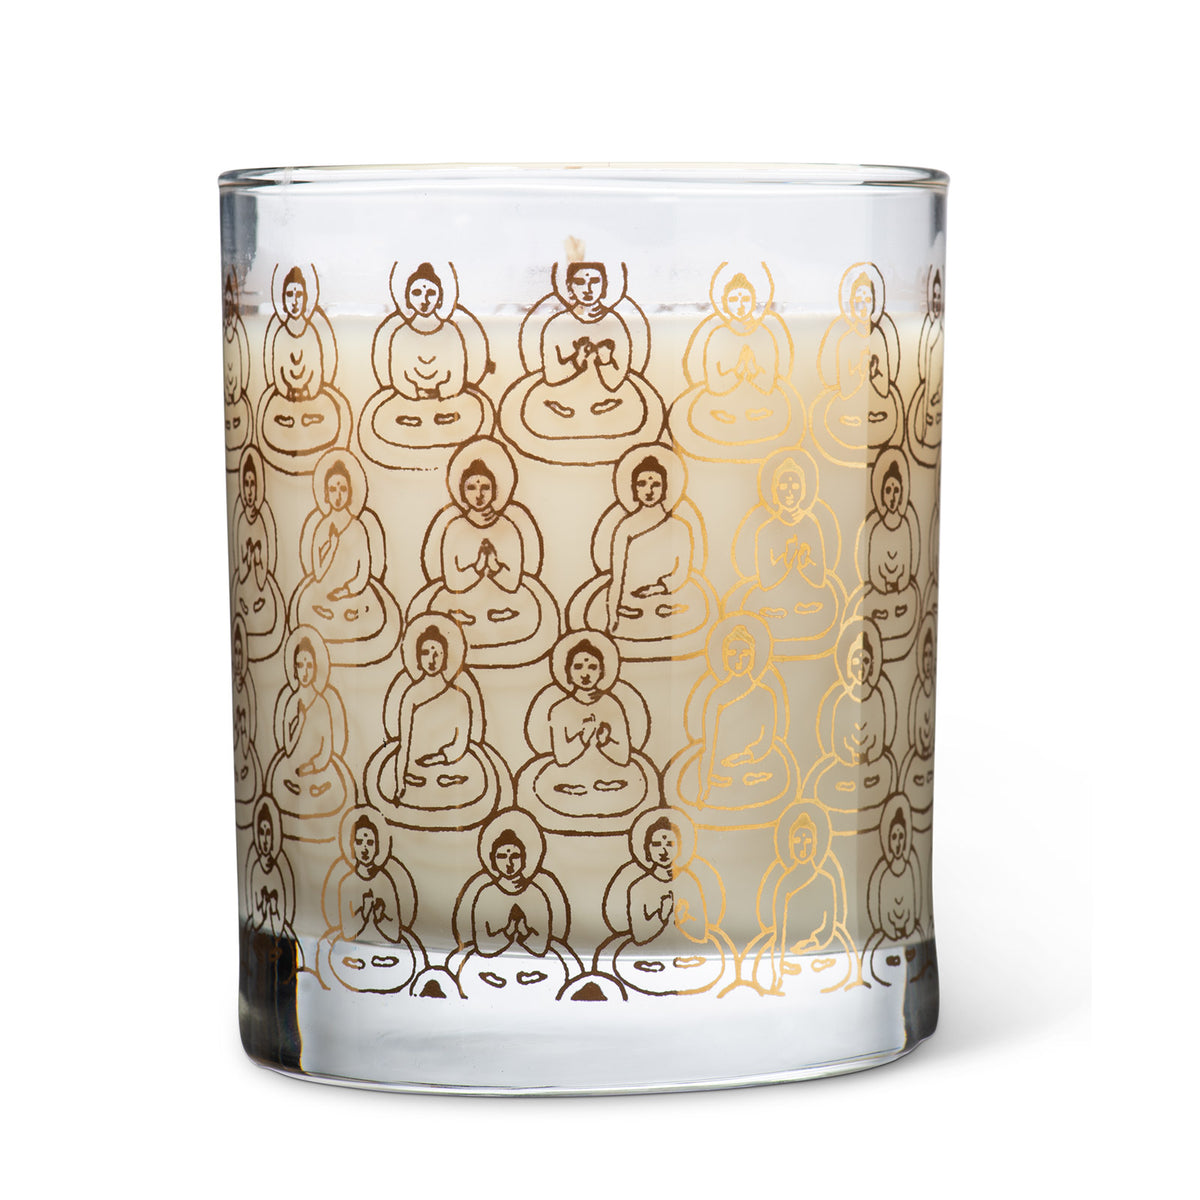 Gold Edition Buddha Candle